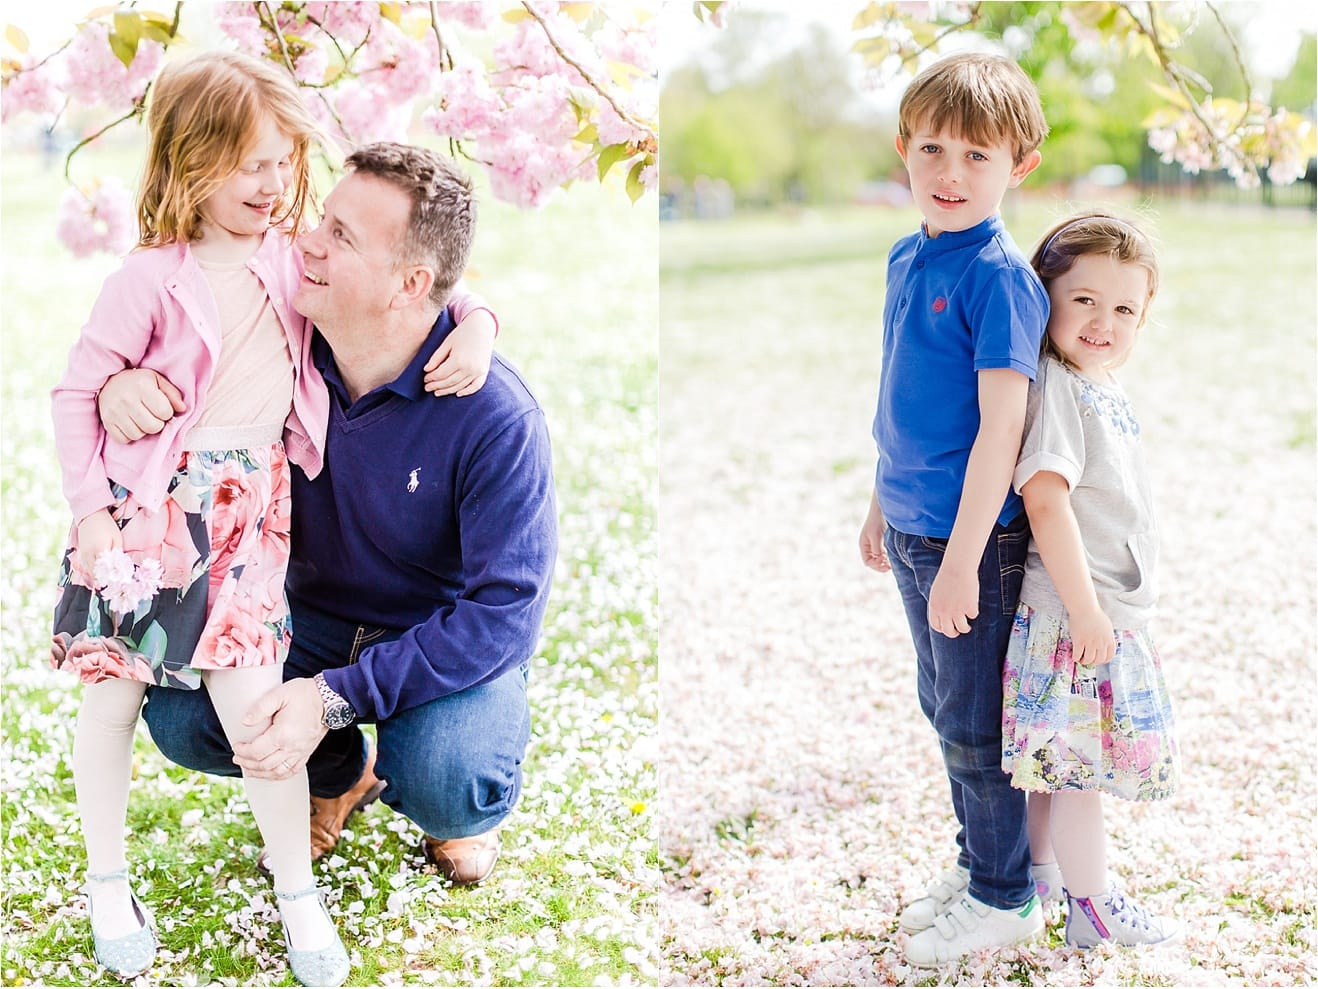 23-mini-session-spring-photography-Eddie-Judd-Photography